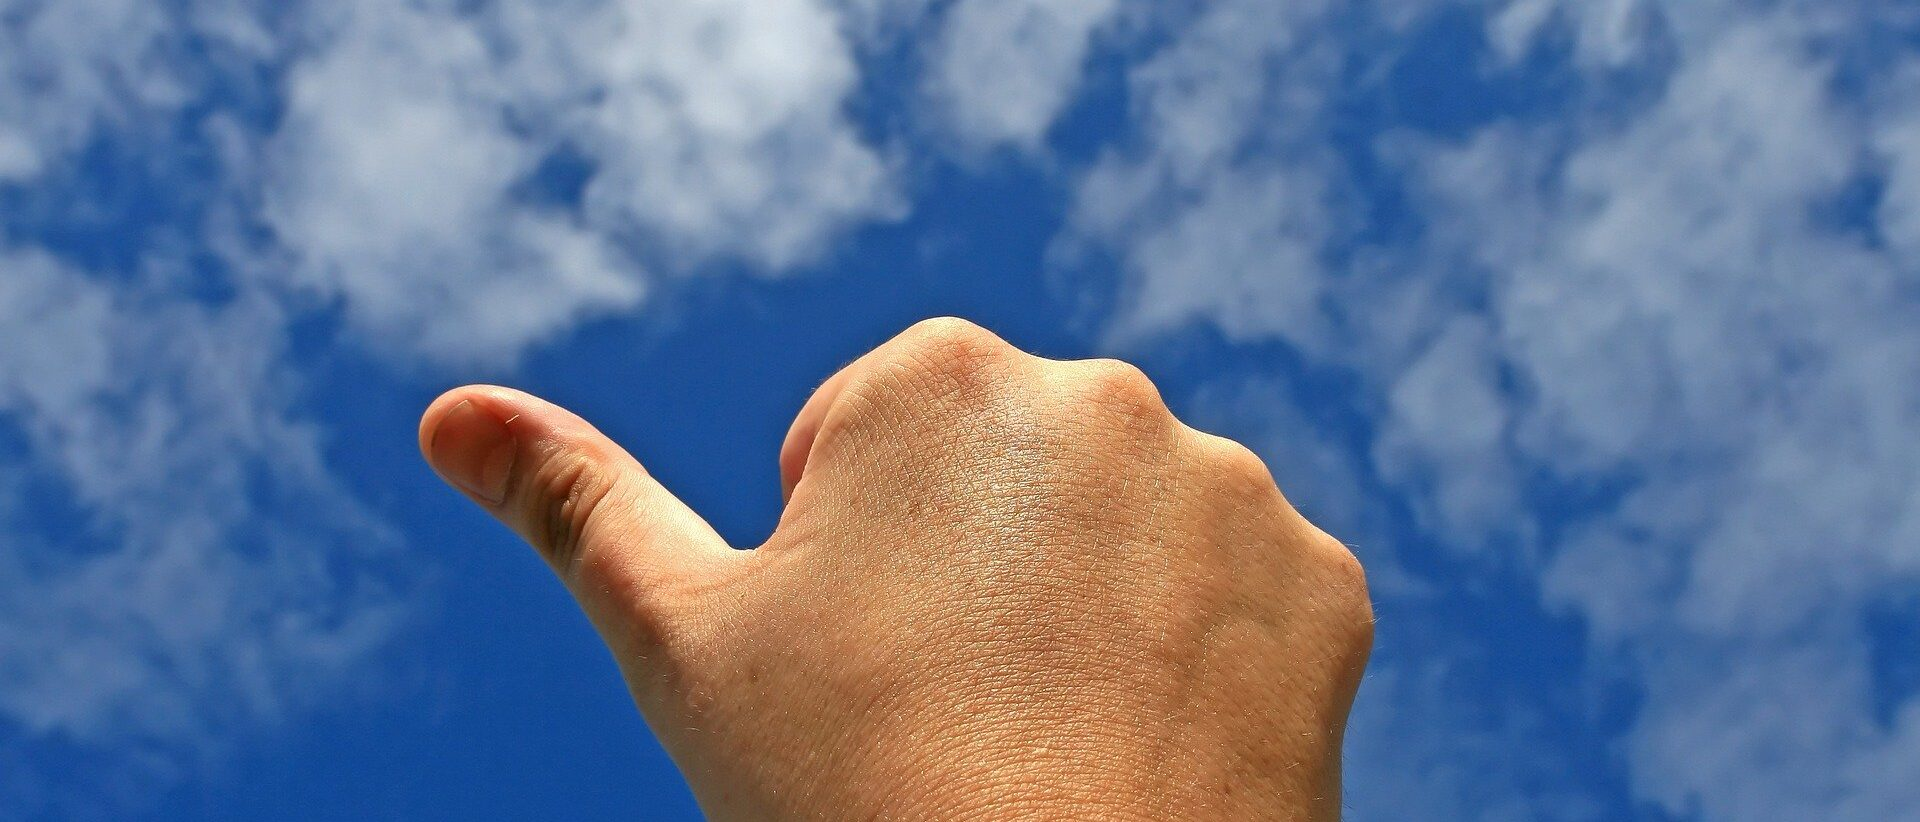 thumb in the air on a blue sky